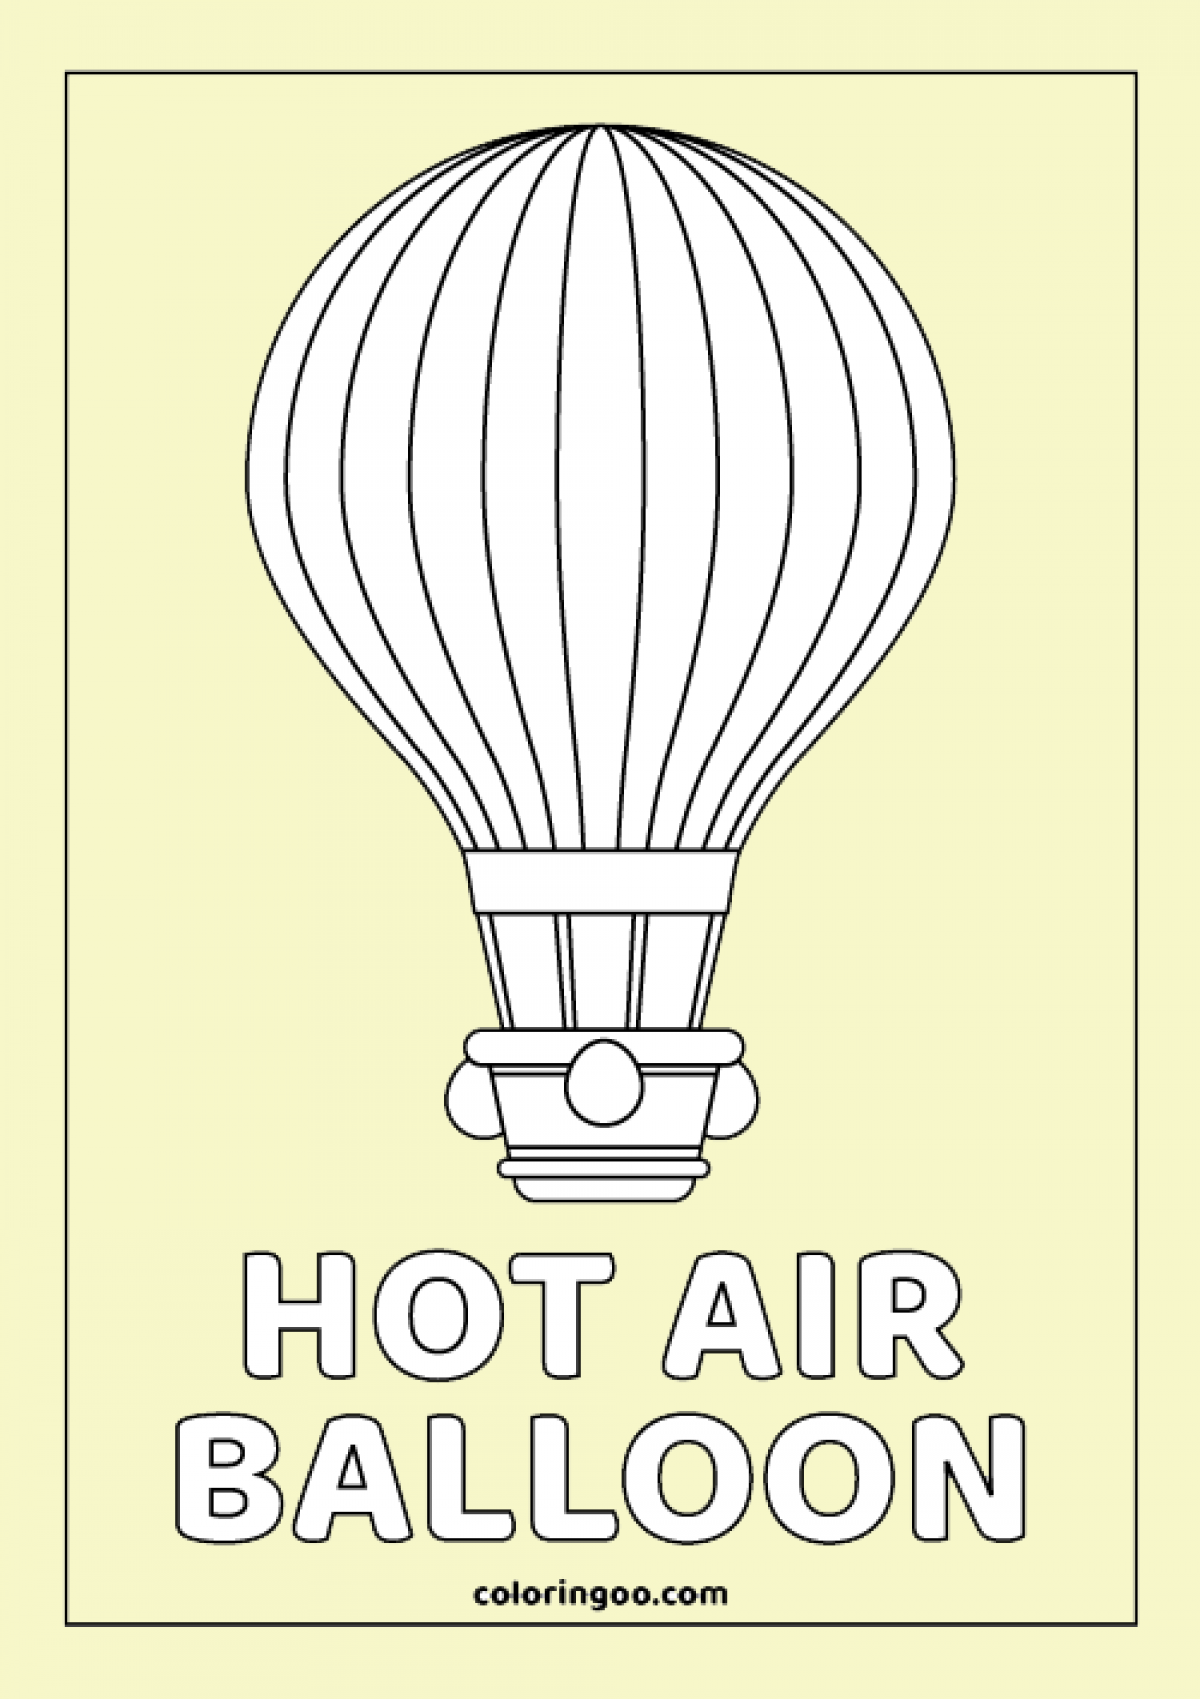 Hot air balloon coloring pages - timeless-miracle.com | 1699x1200